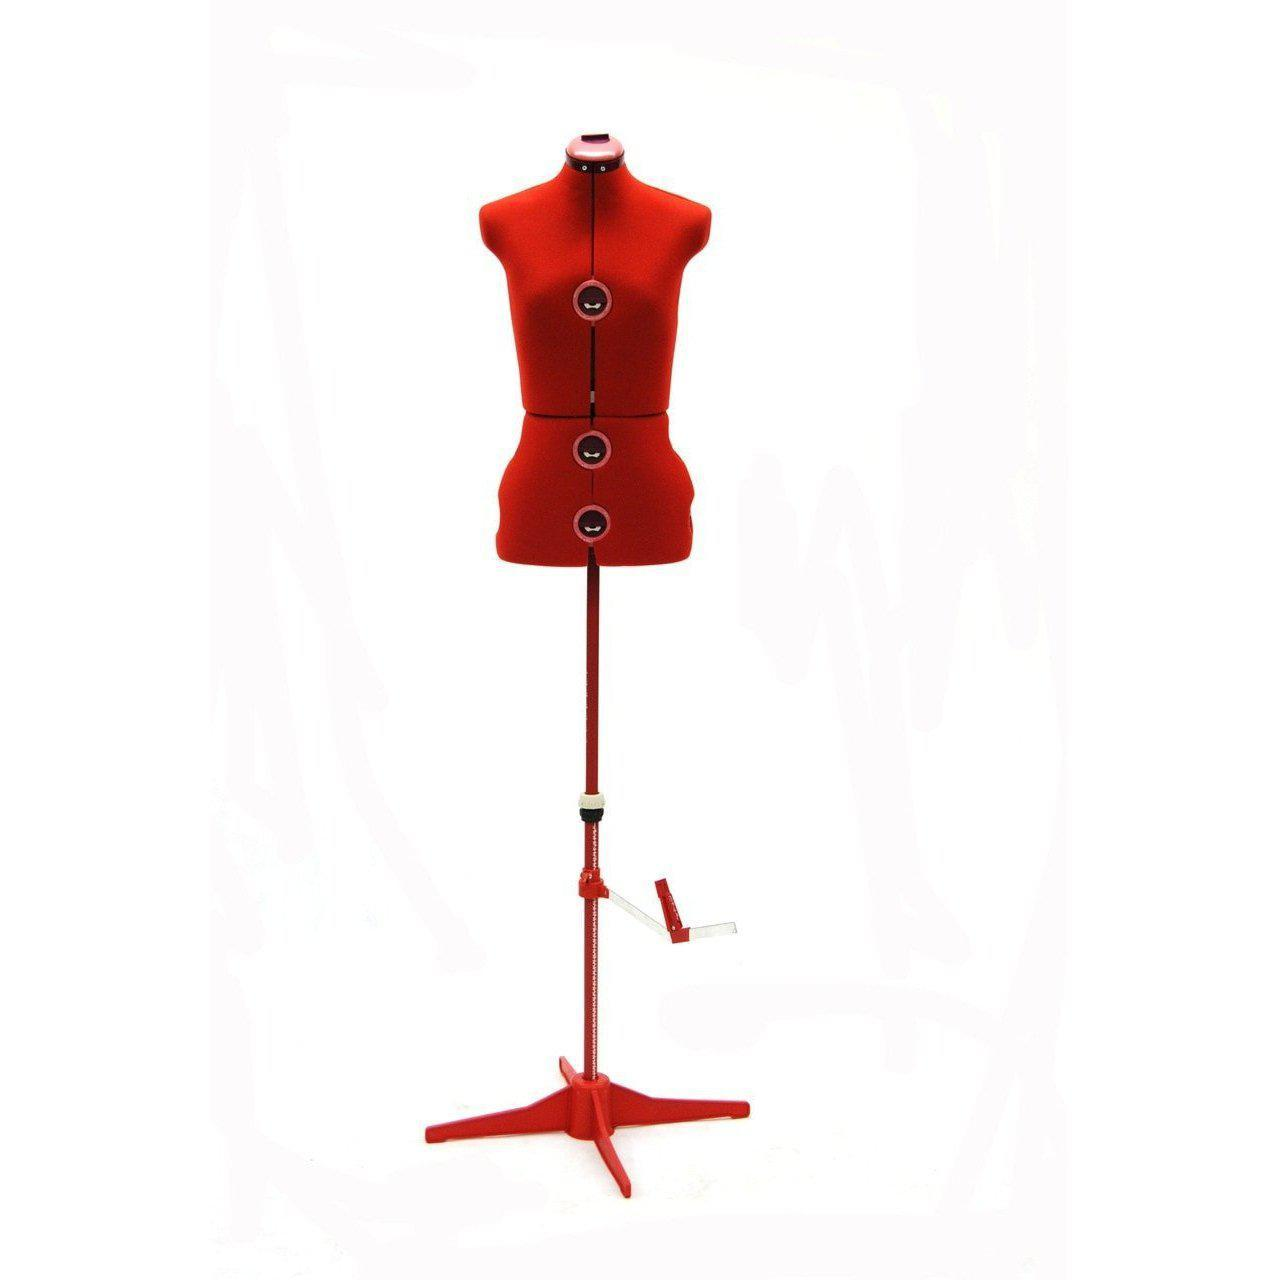 Mannequin Mall Female Small Adjustable Dress Form MM-JFFH2 For Fashion Stores and Retail Shops